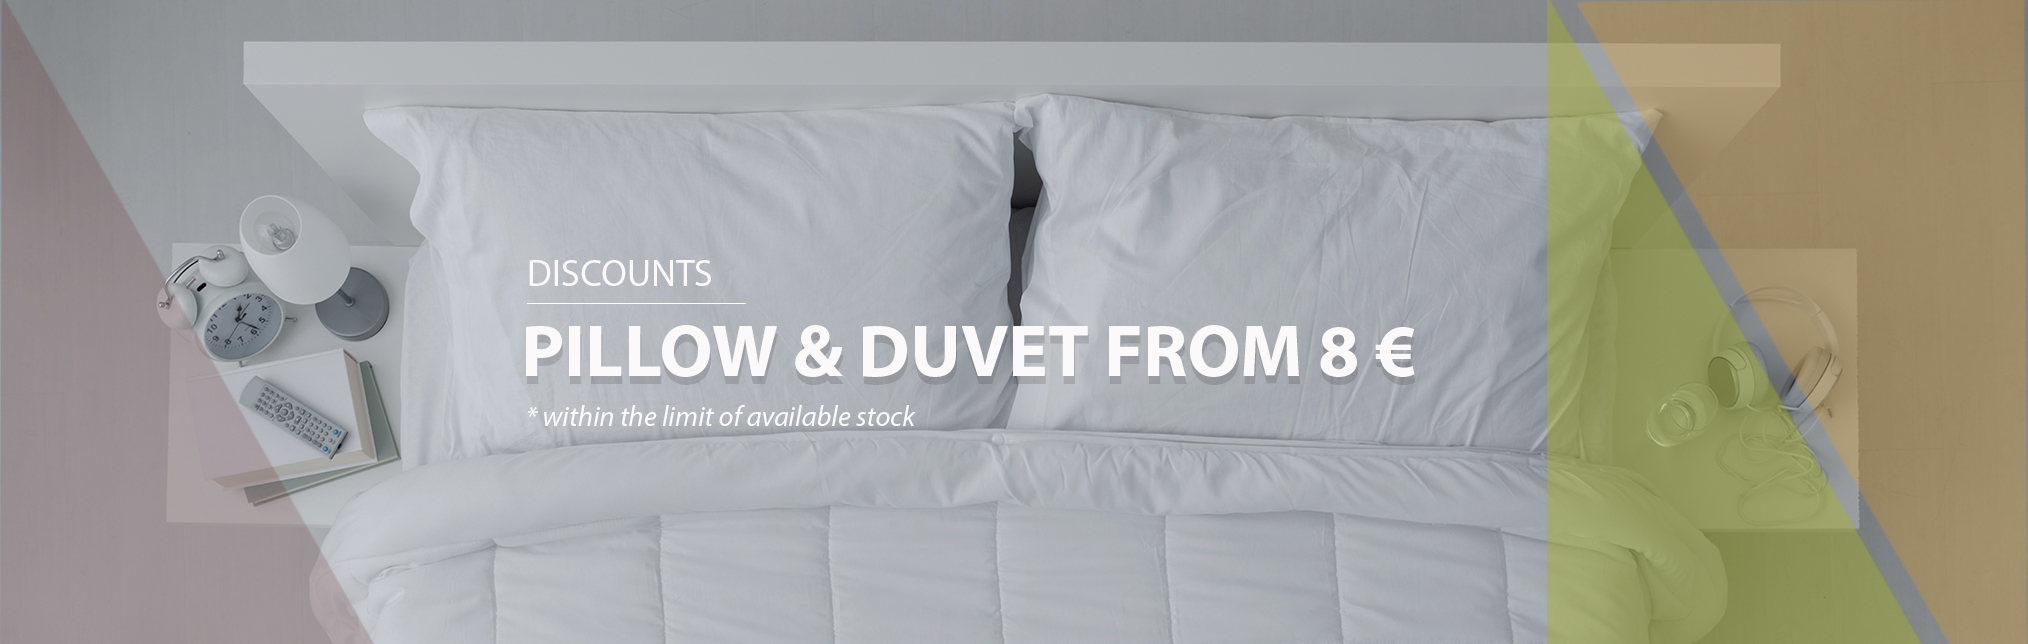 Promotion May-June 2018 - Pillow and Duvet